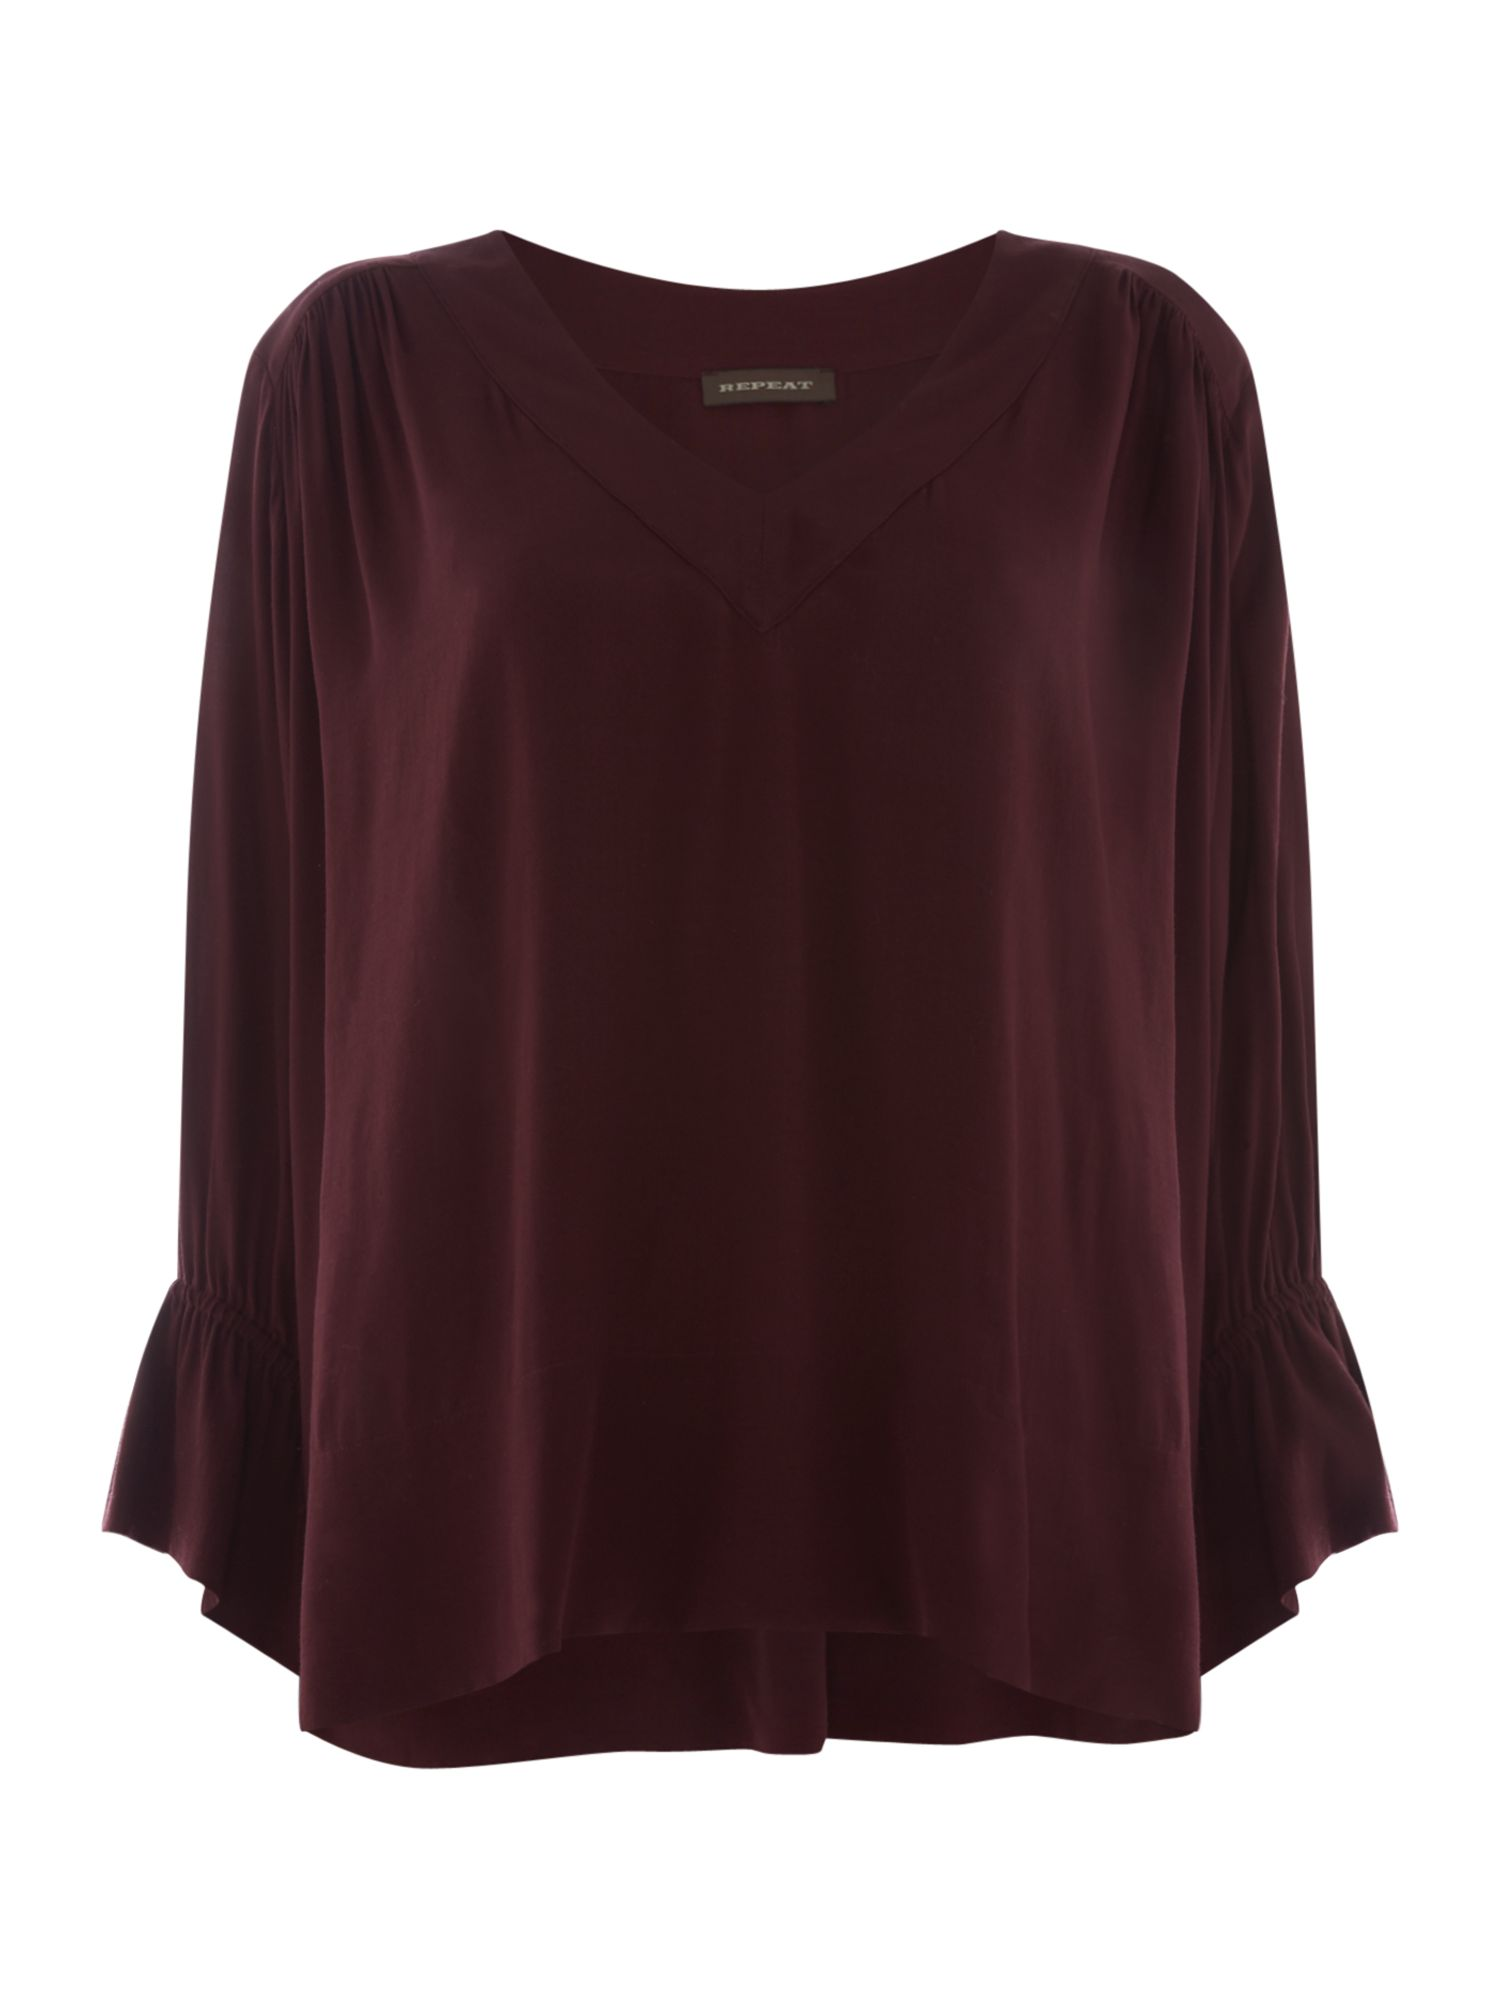 Repeat Cashmere Simple v neck blouse, Red